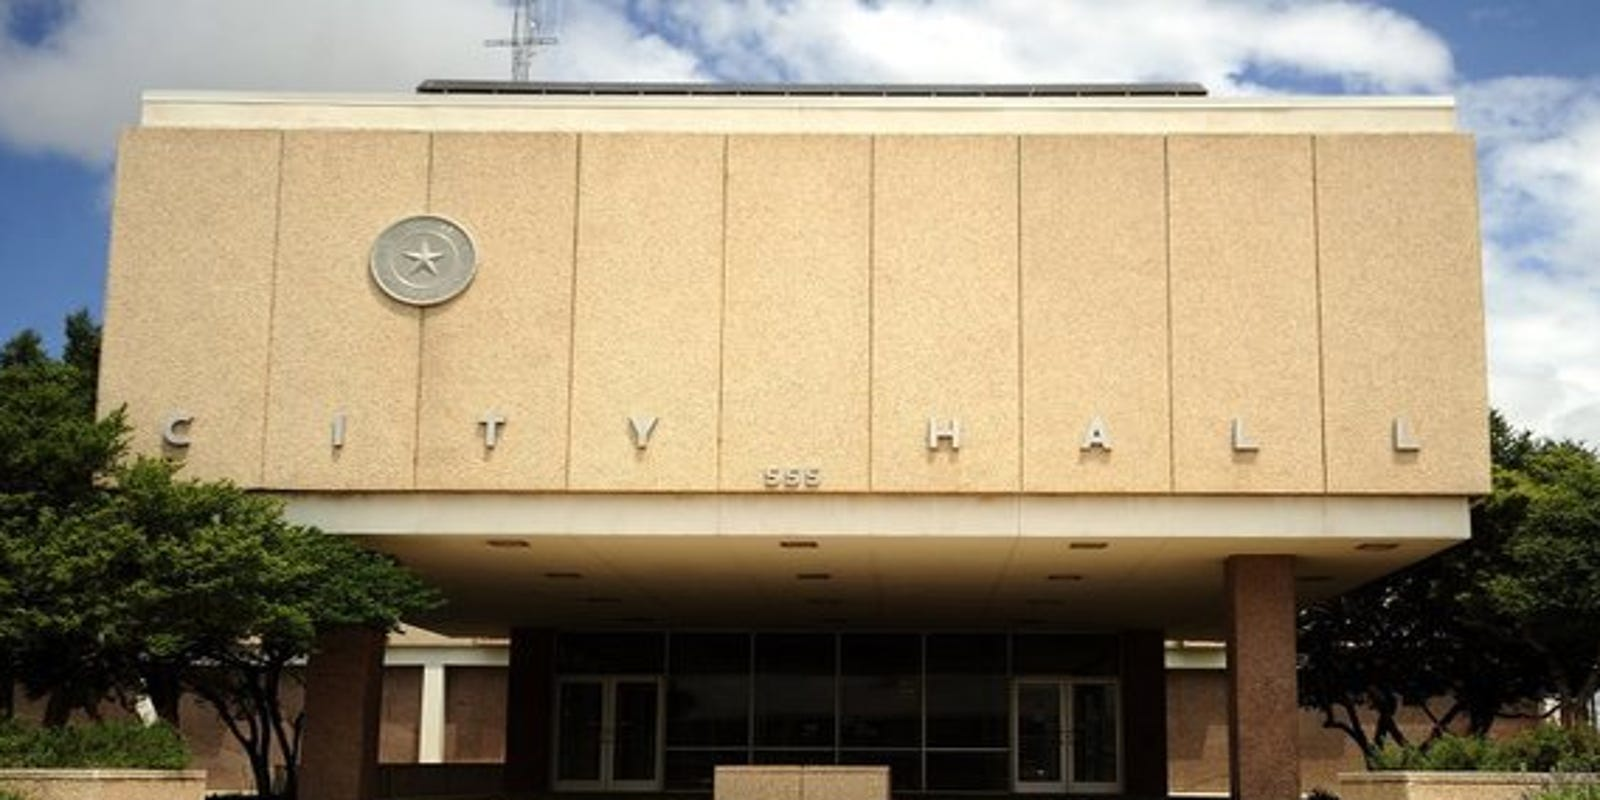 $28.32 million for radio, energy, water and sewer projects among Abilene Council concerns